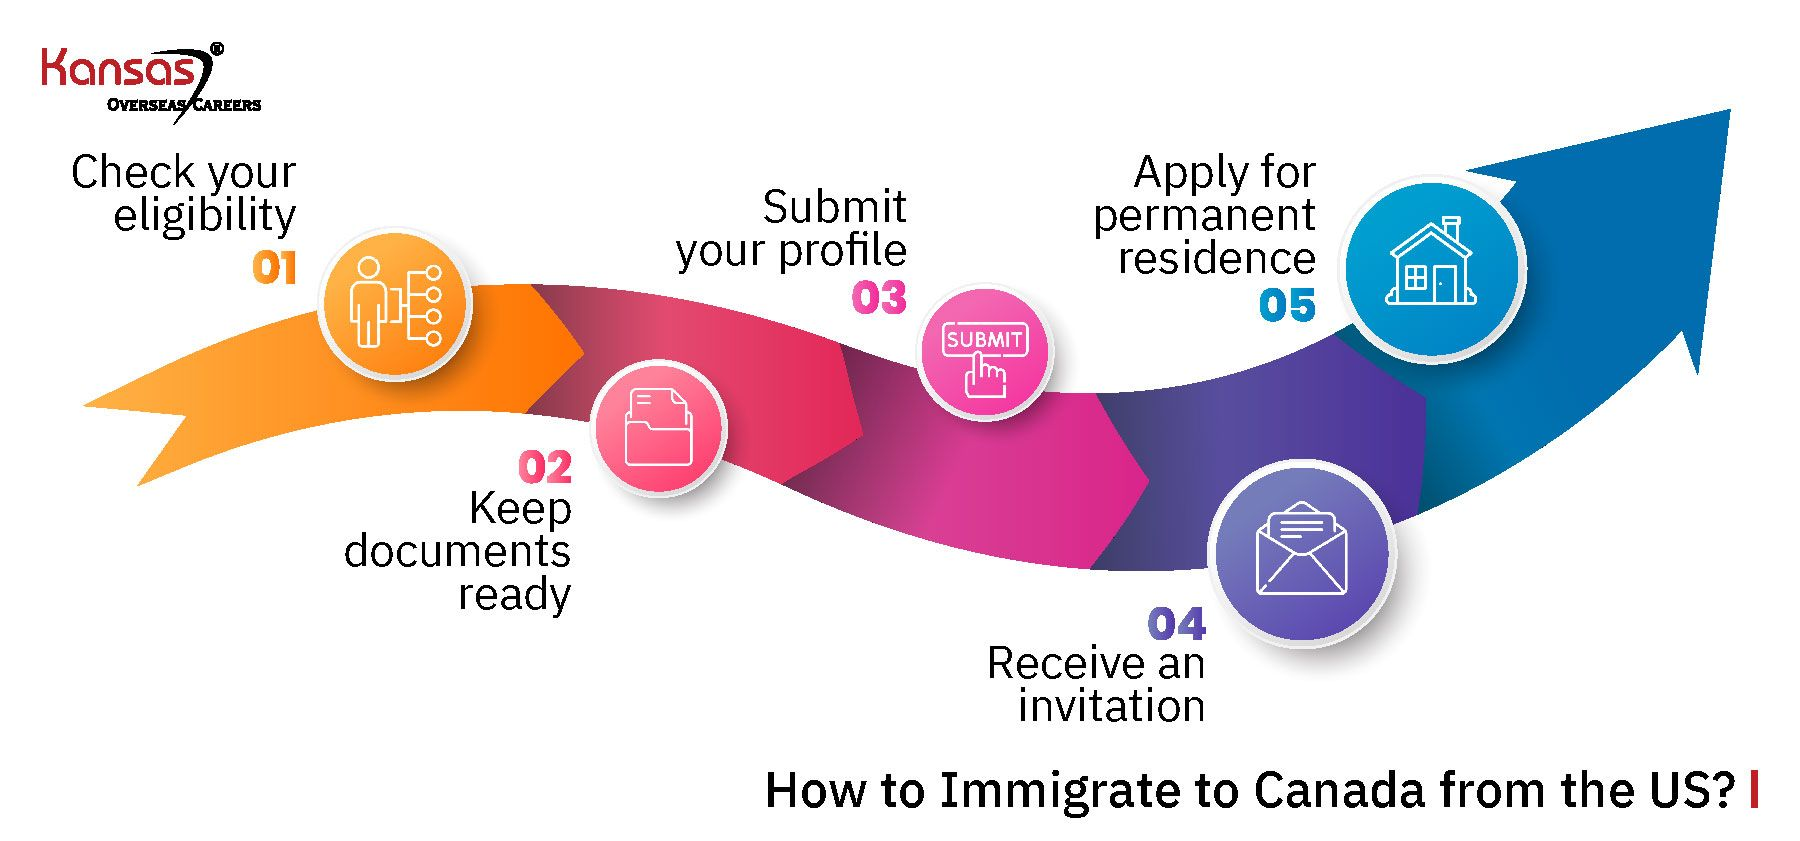 How-to-Immigrate-to-Canada-from-the-US-